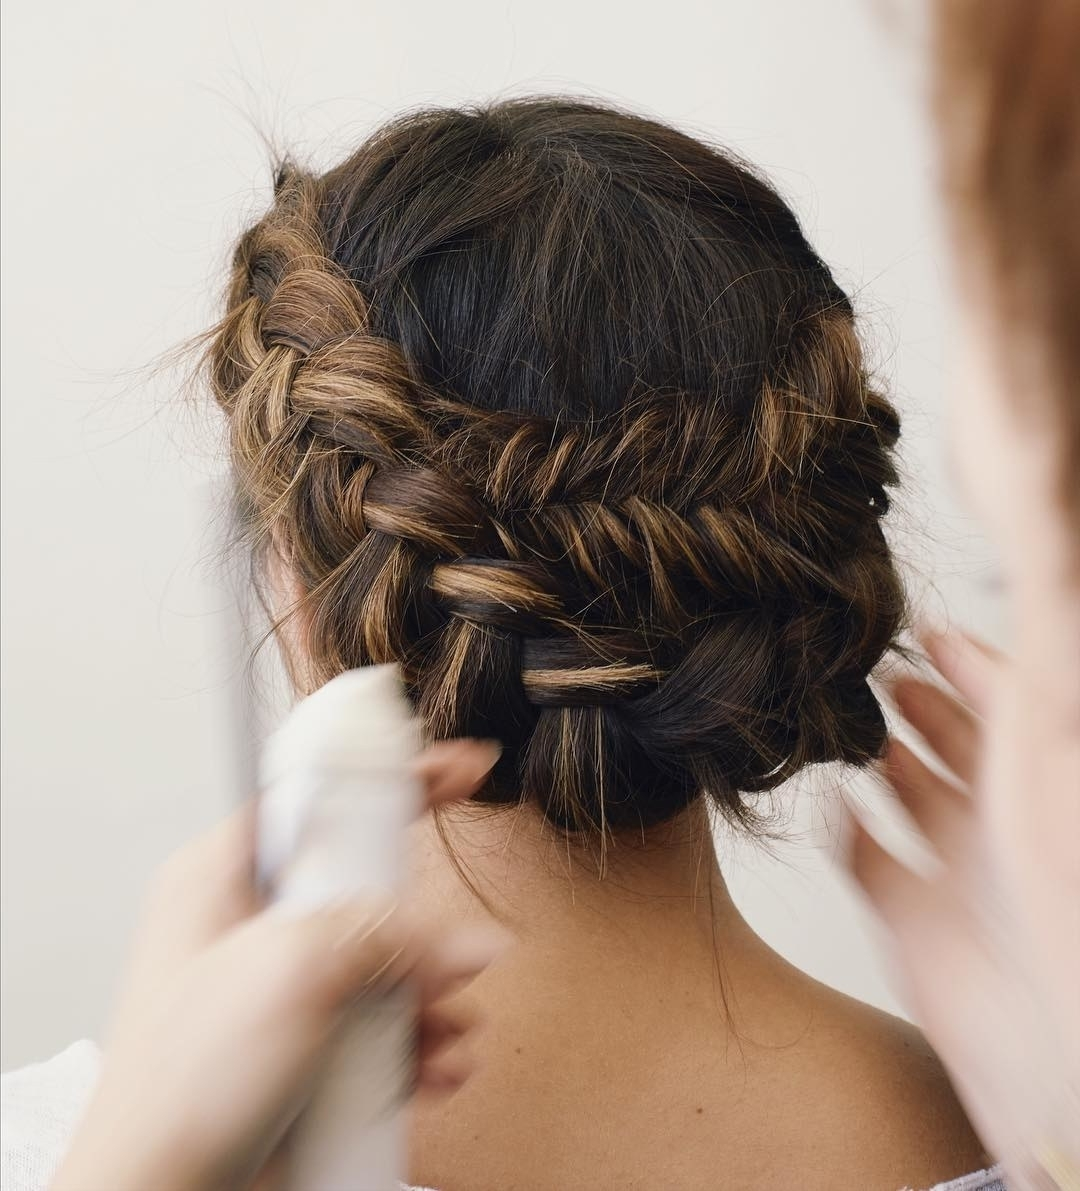 Brides Intended For Preferred Romantic Ponytail Hairstyles (View 4 of 20)